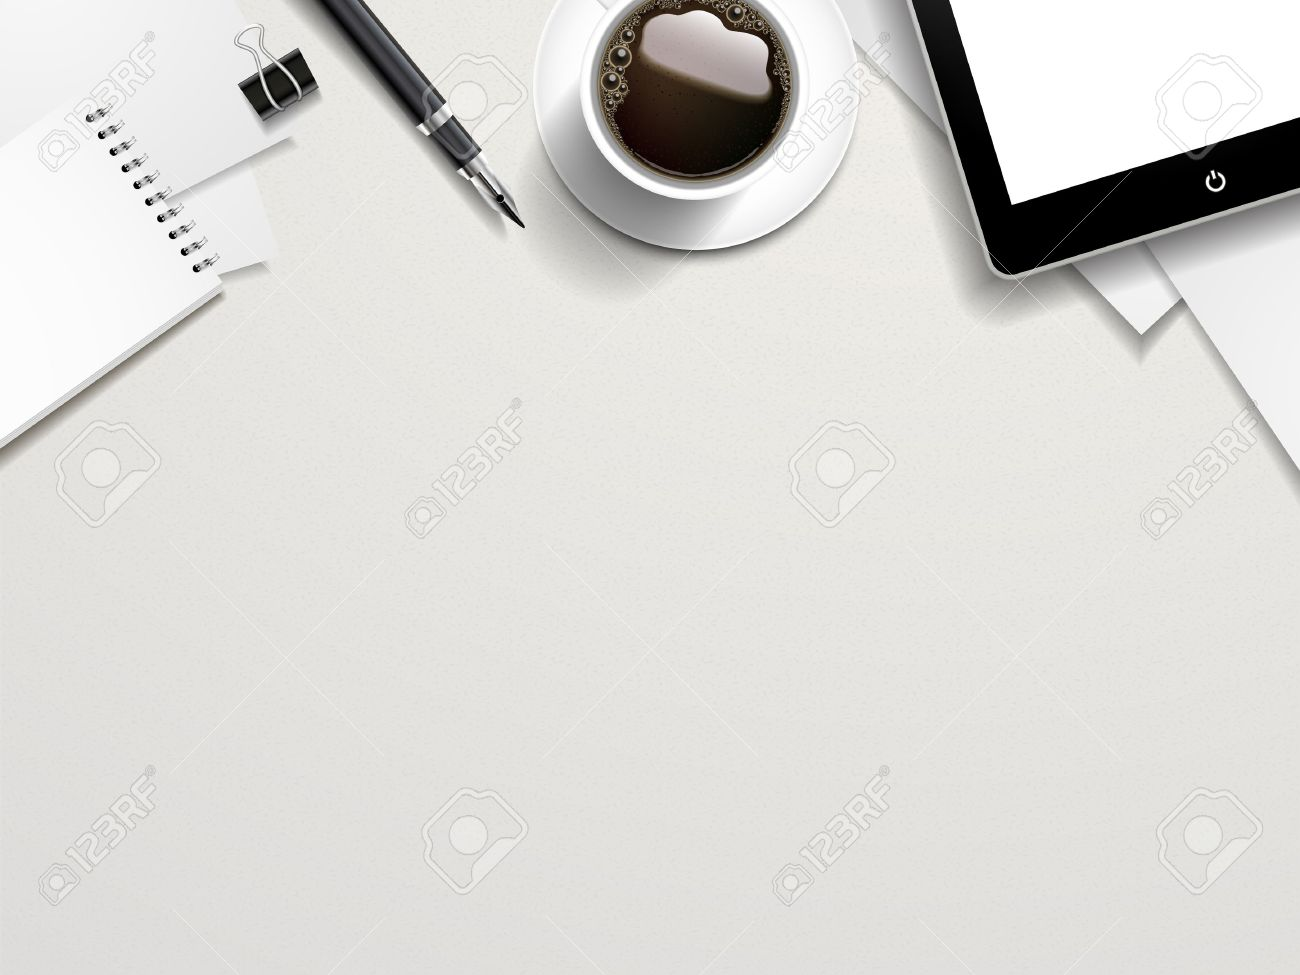 Top View Of Working Place Elements On White Table Stock Vector   33558770